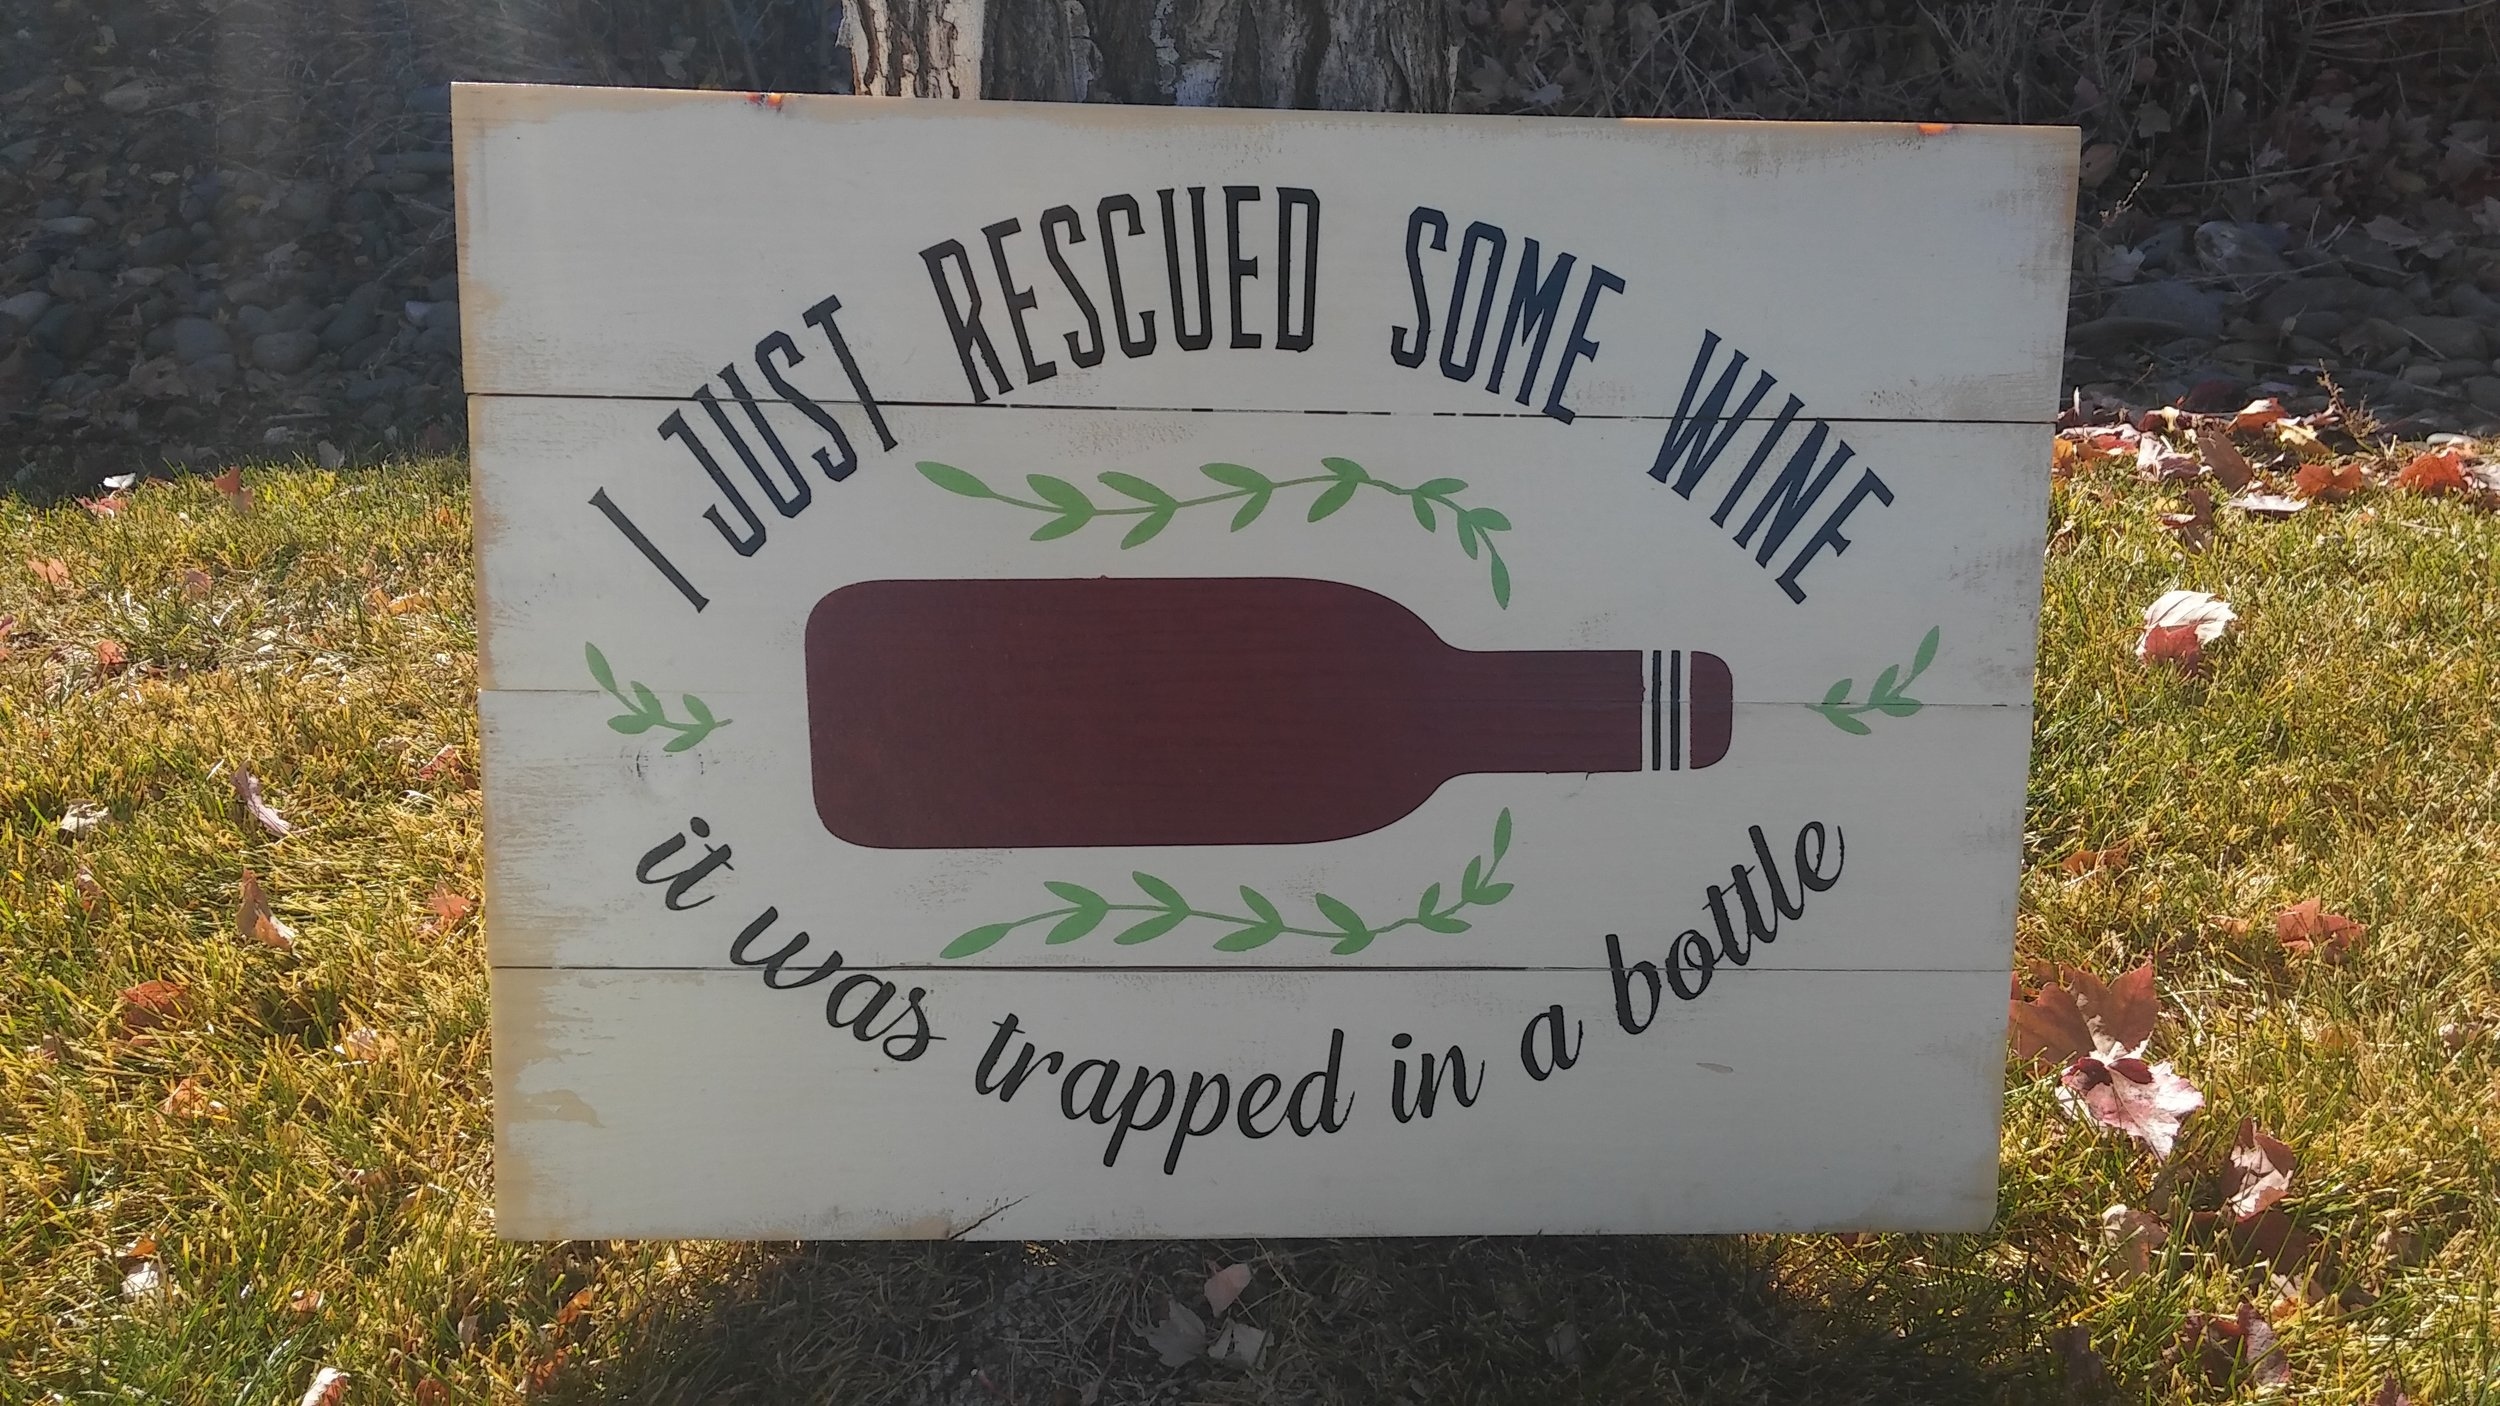 I just rescued some wine..